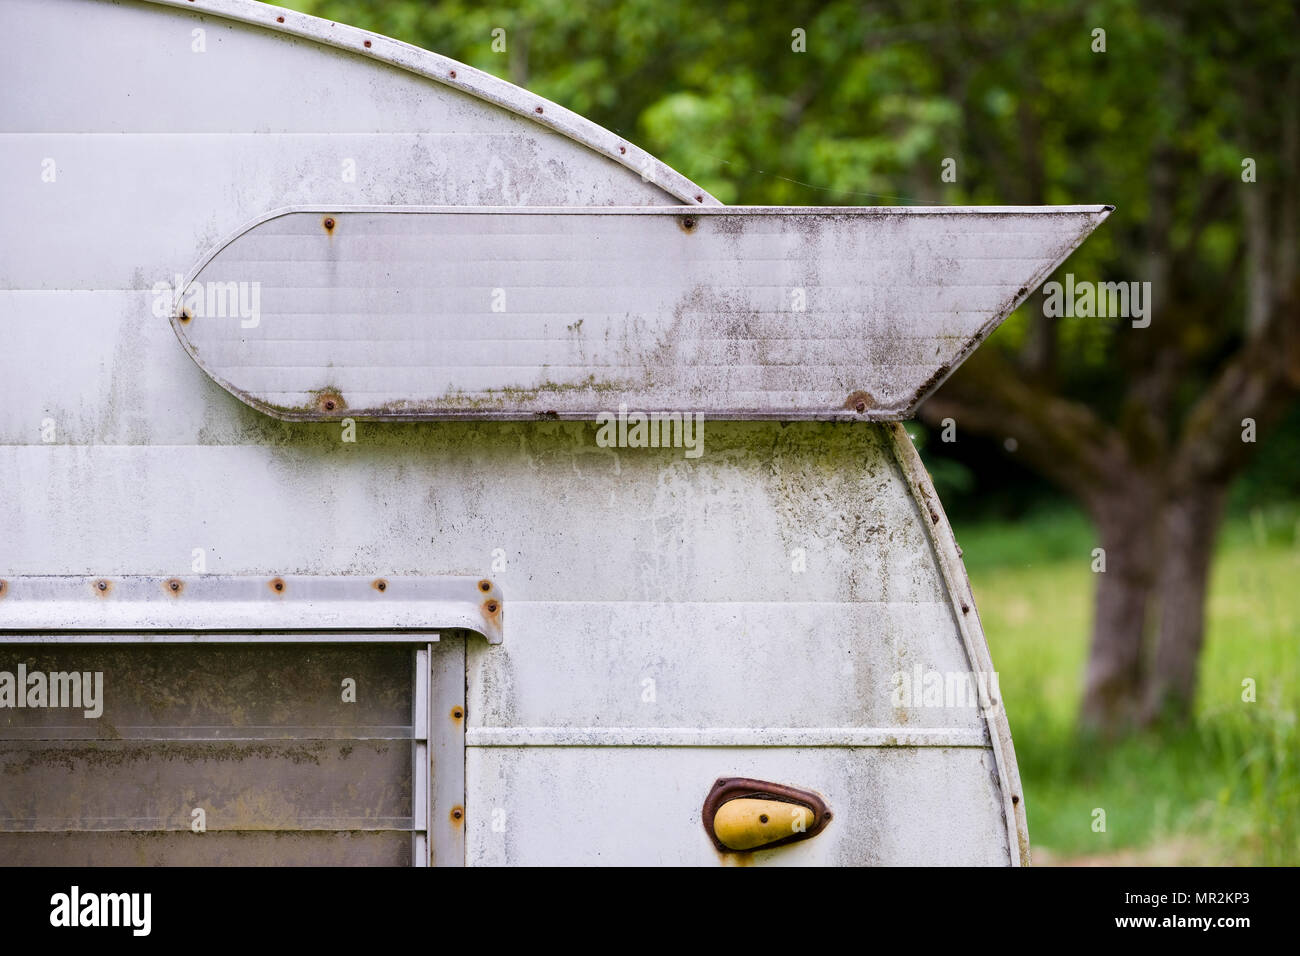 Decorative wing on camper trailer - Stock Image